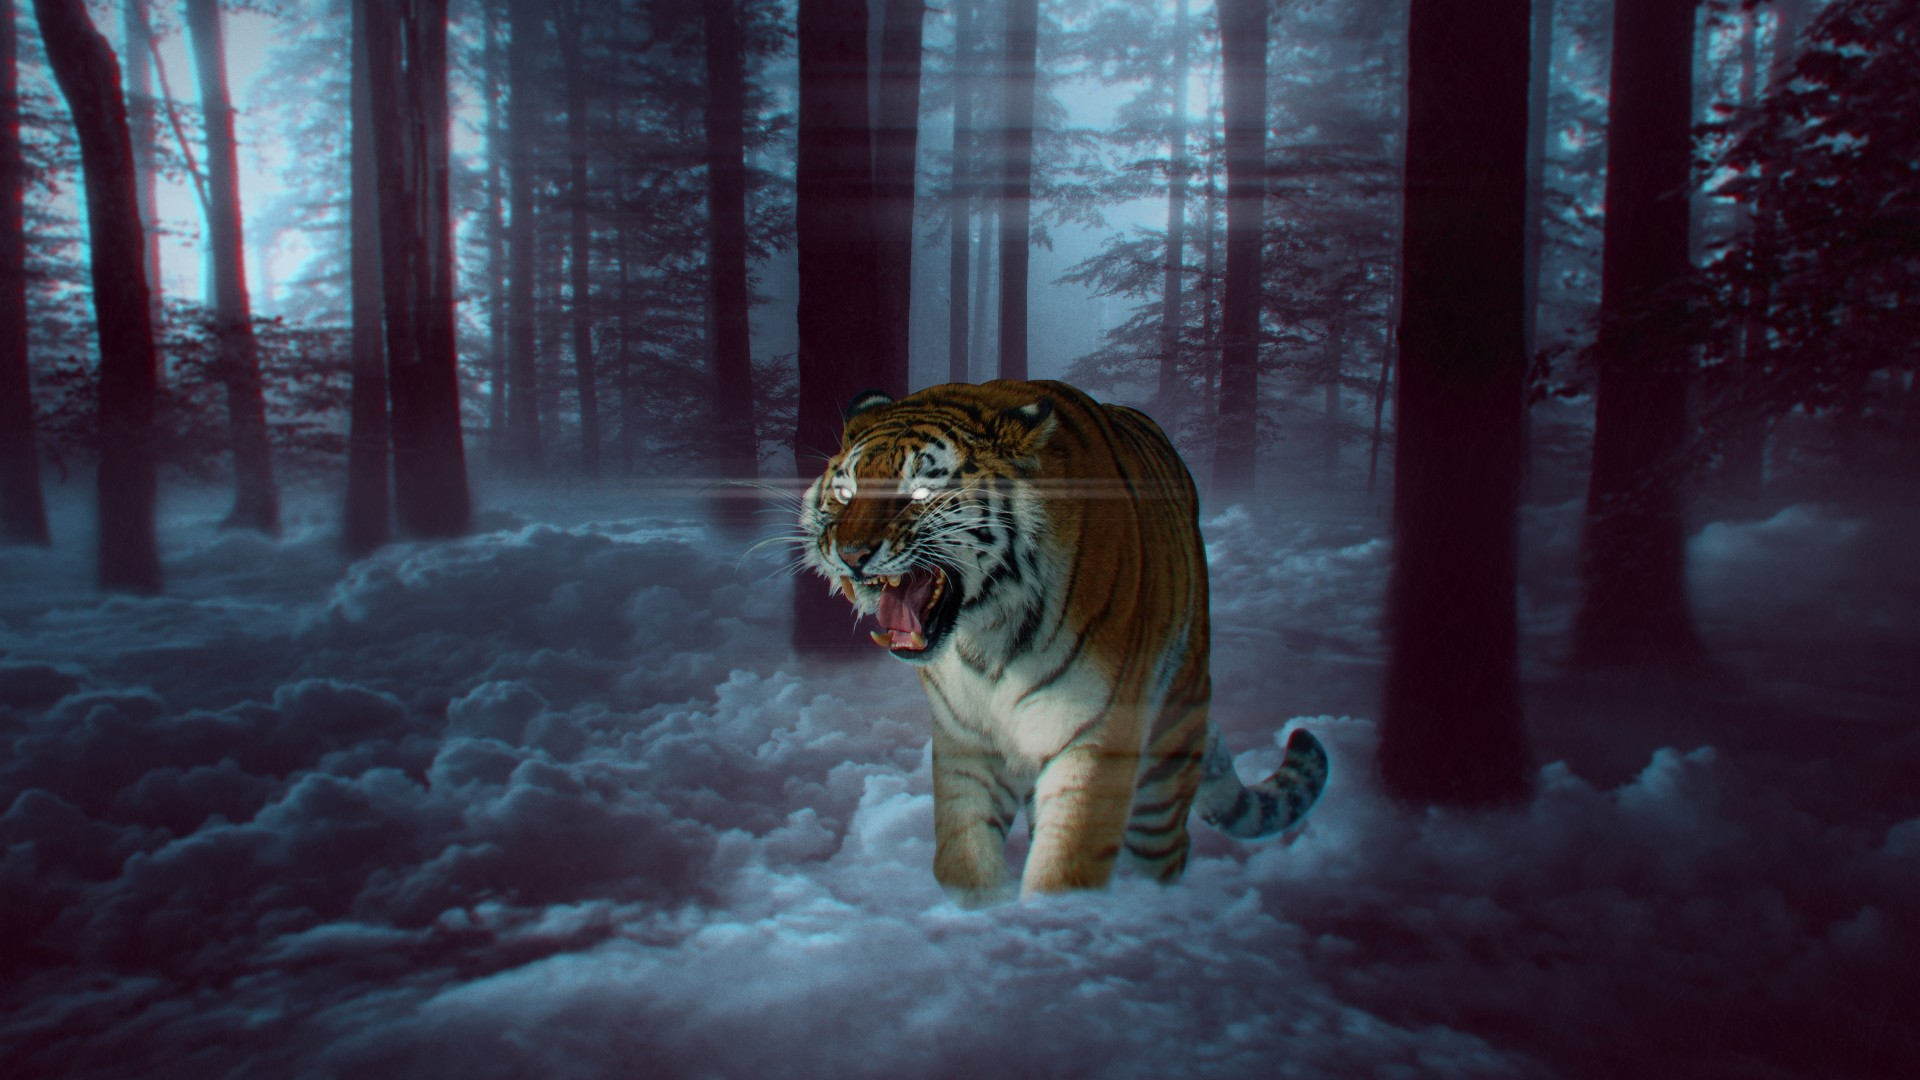 Apple Hd Wallpaper Iphone 7 Mystic Tiger In Forest 4k 8k Wallpapers Hd Wallpapers